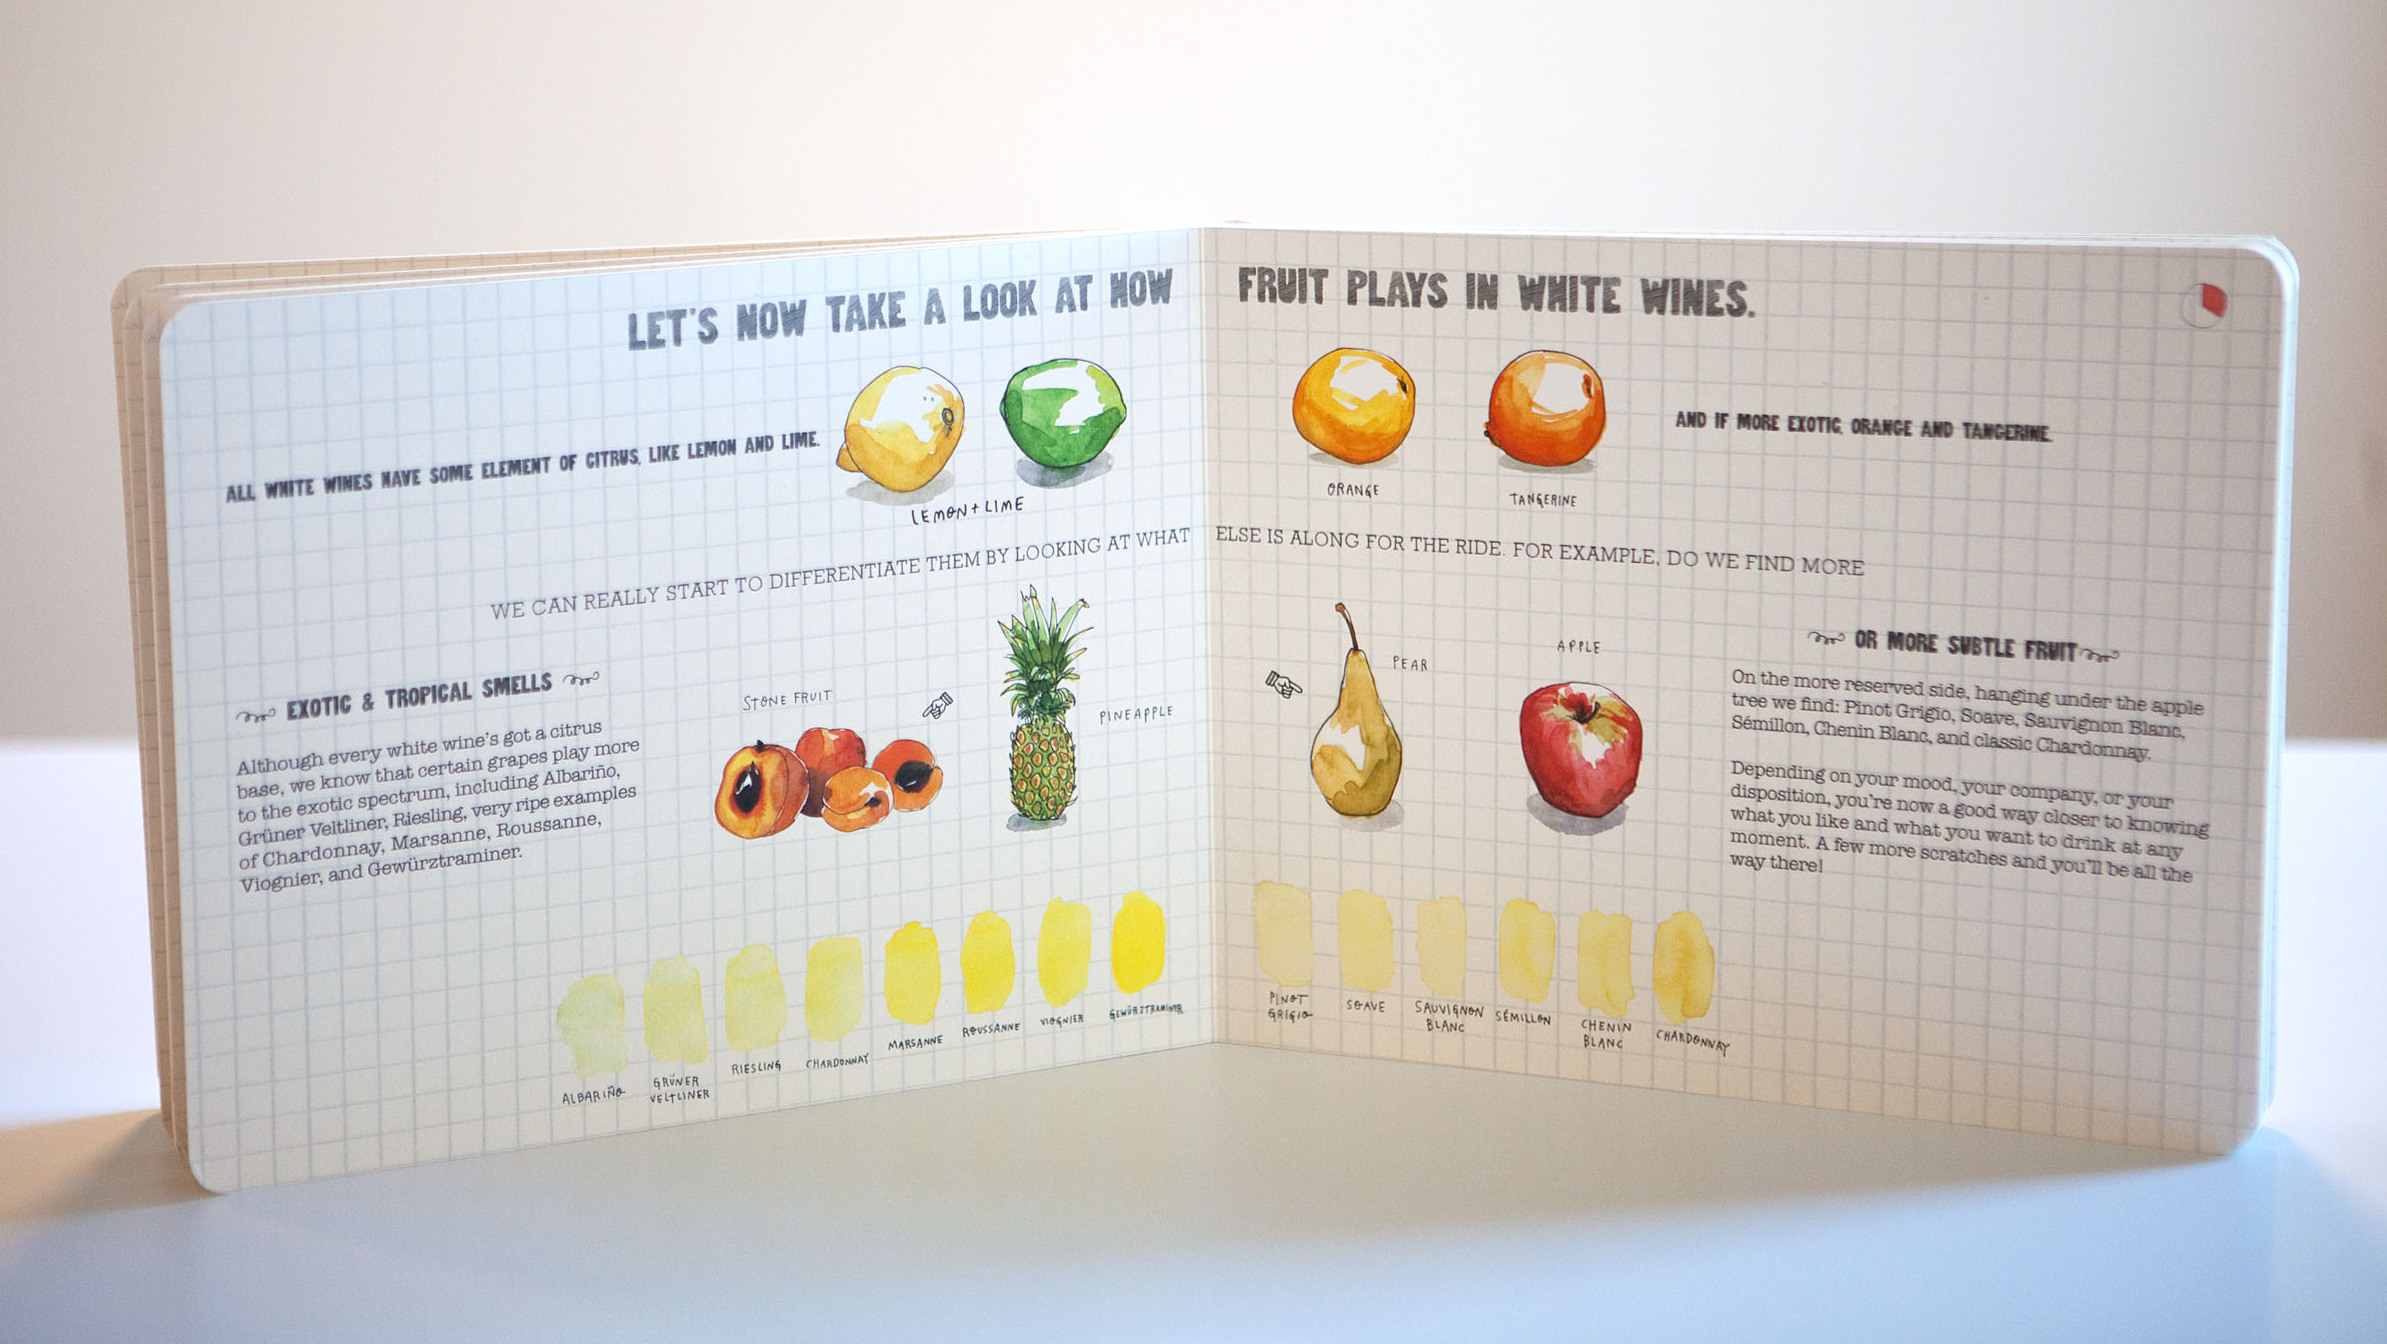 Scratch 'N' Sniff Your Way To Wine Expertise ... Or At Least More Fun